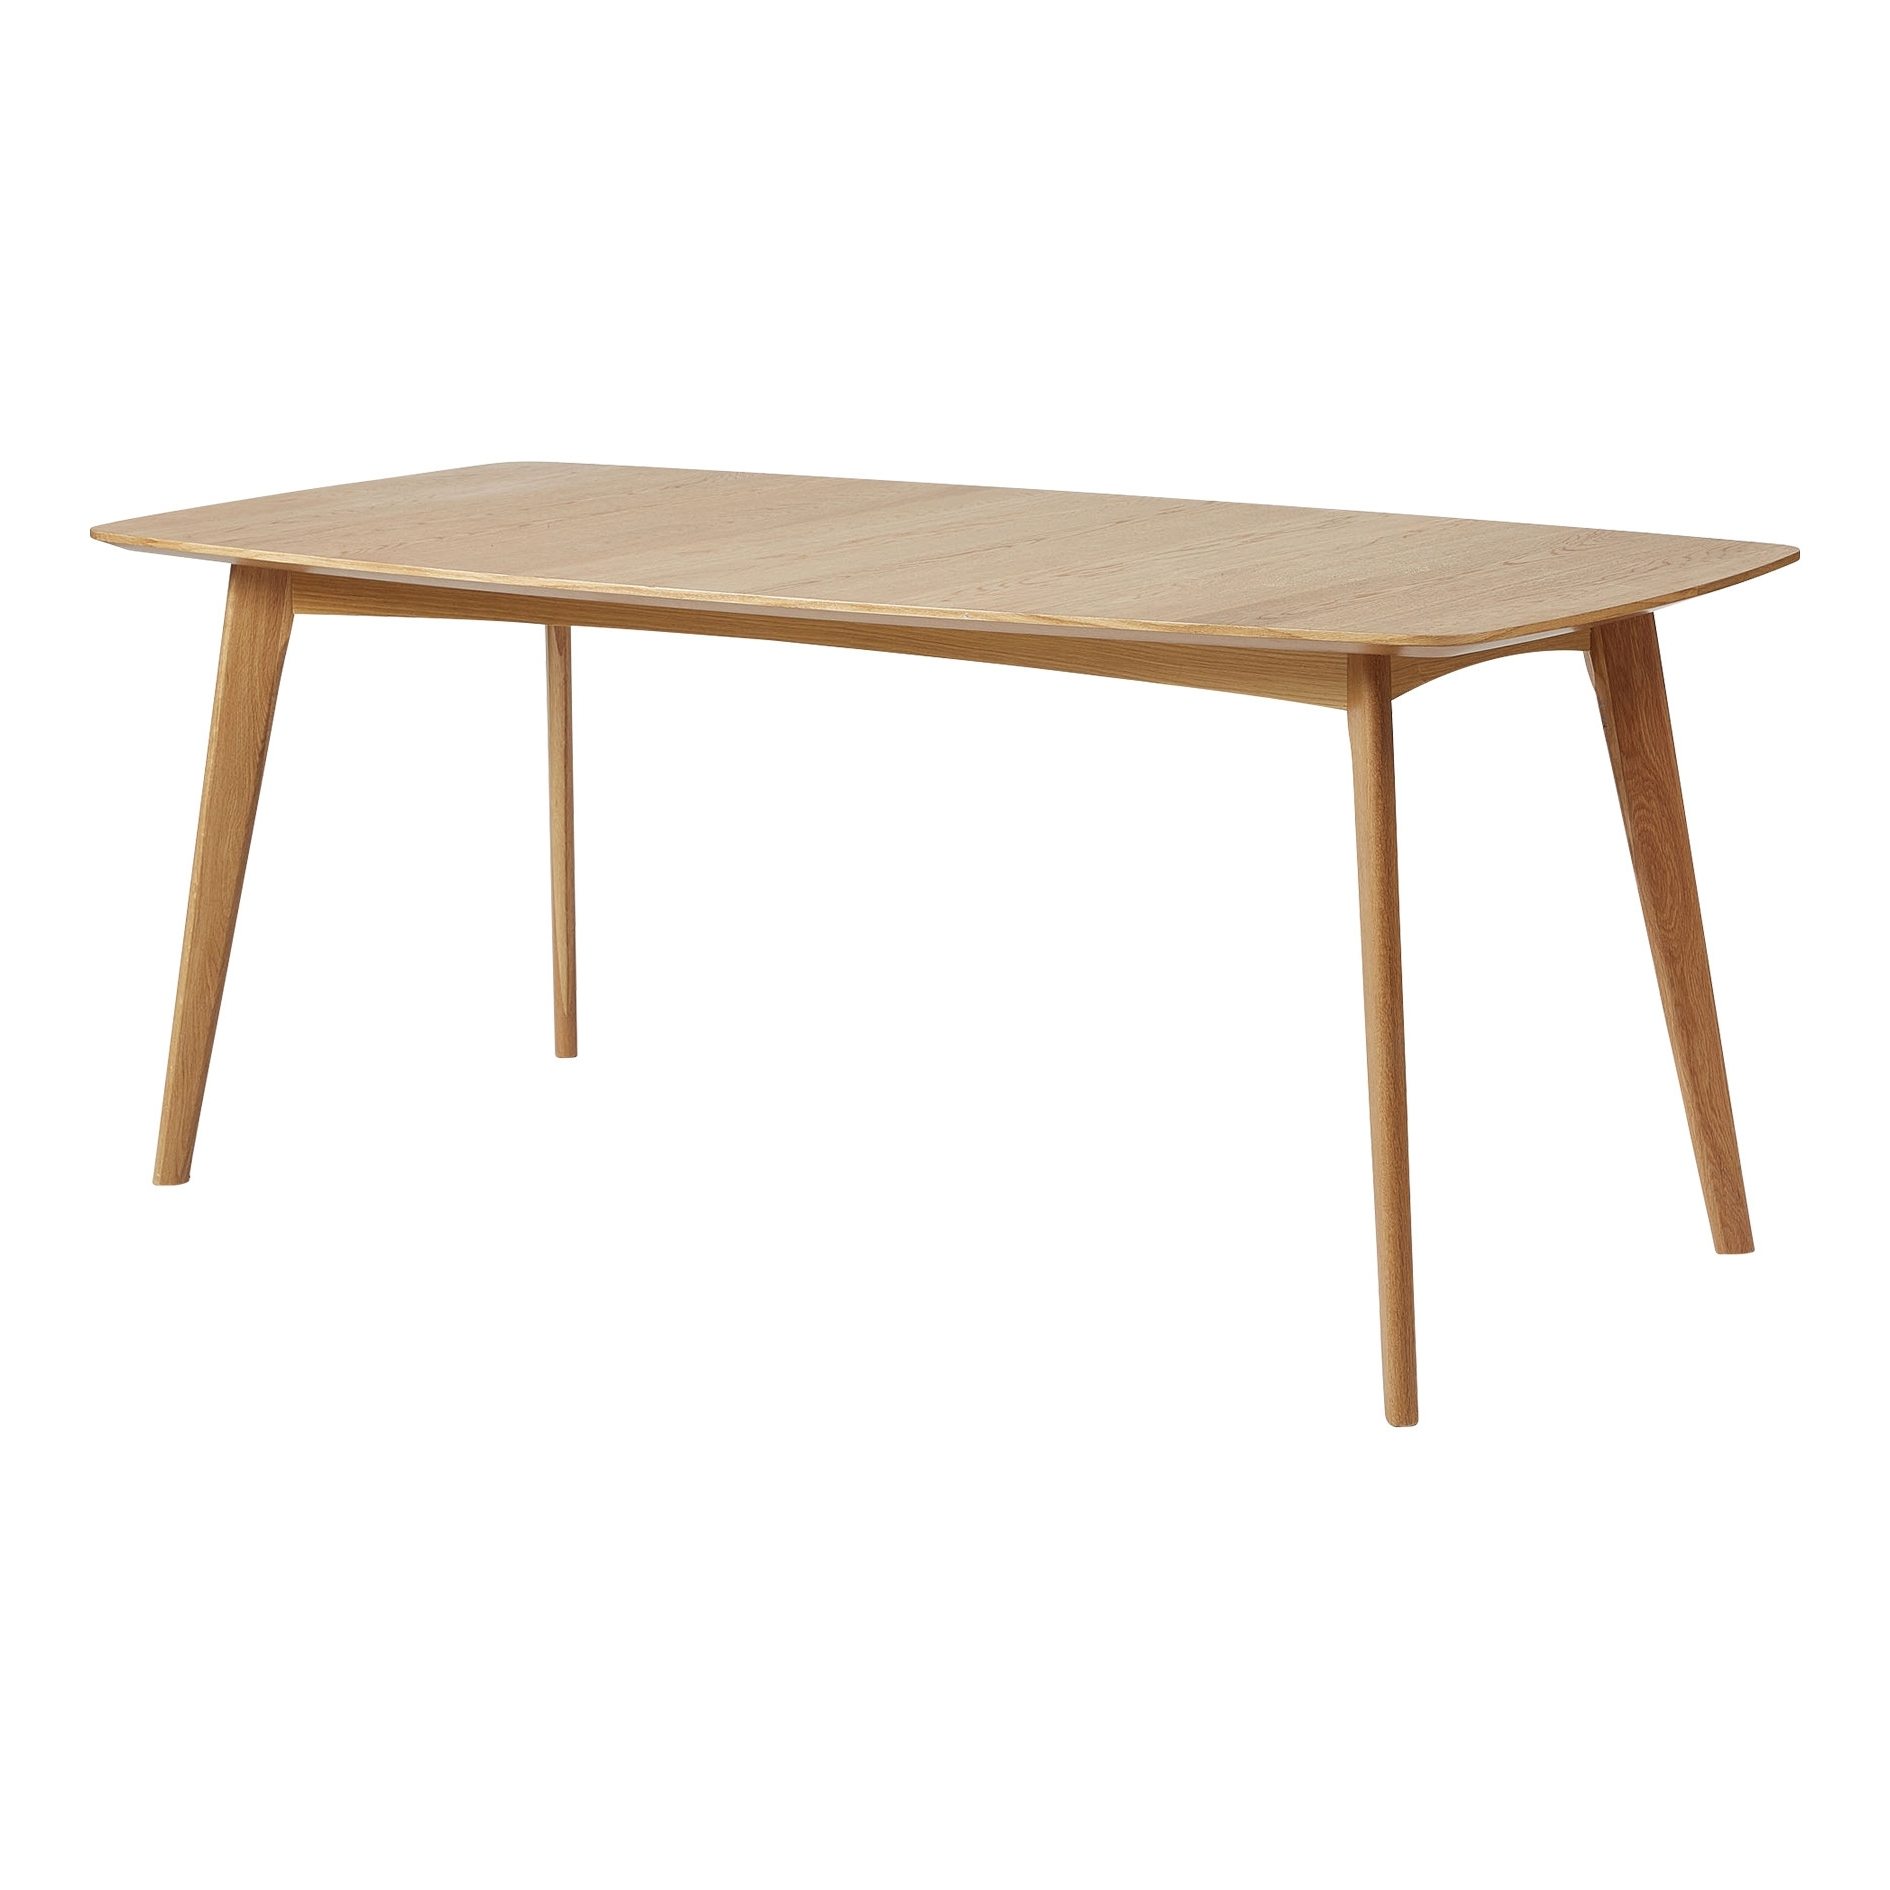 180Cm Dining Tables Pertaining To Widely Used Oslo 180Cm Oak Dining Table (Gallery 10 of 25)